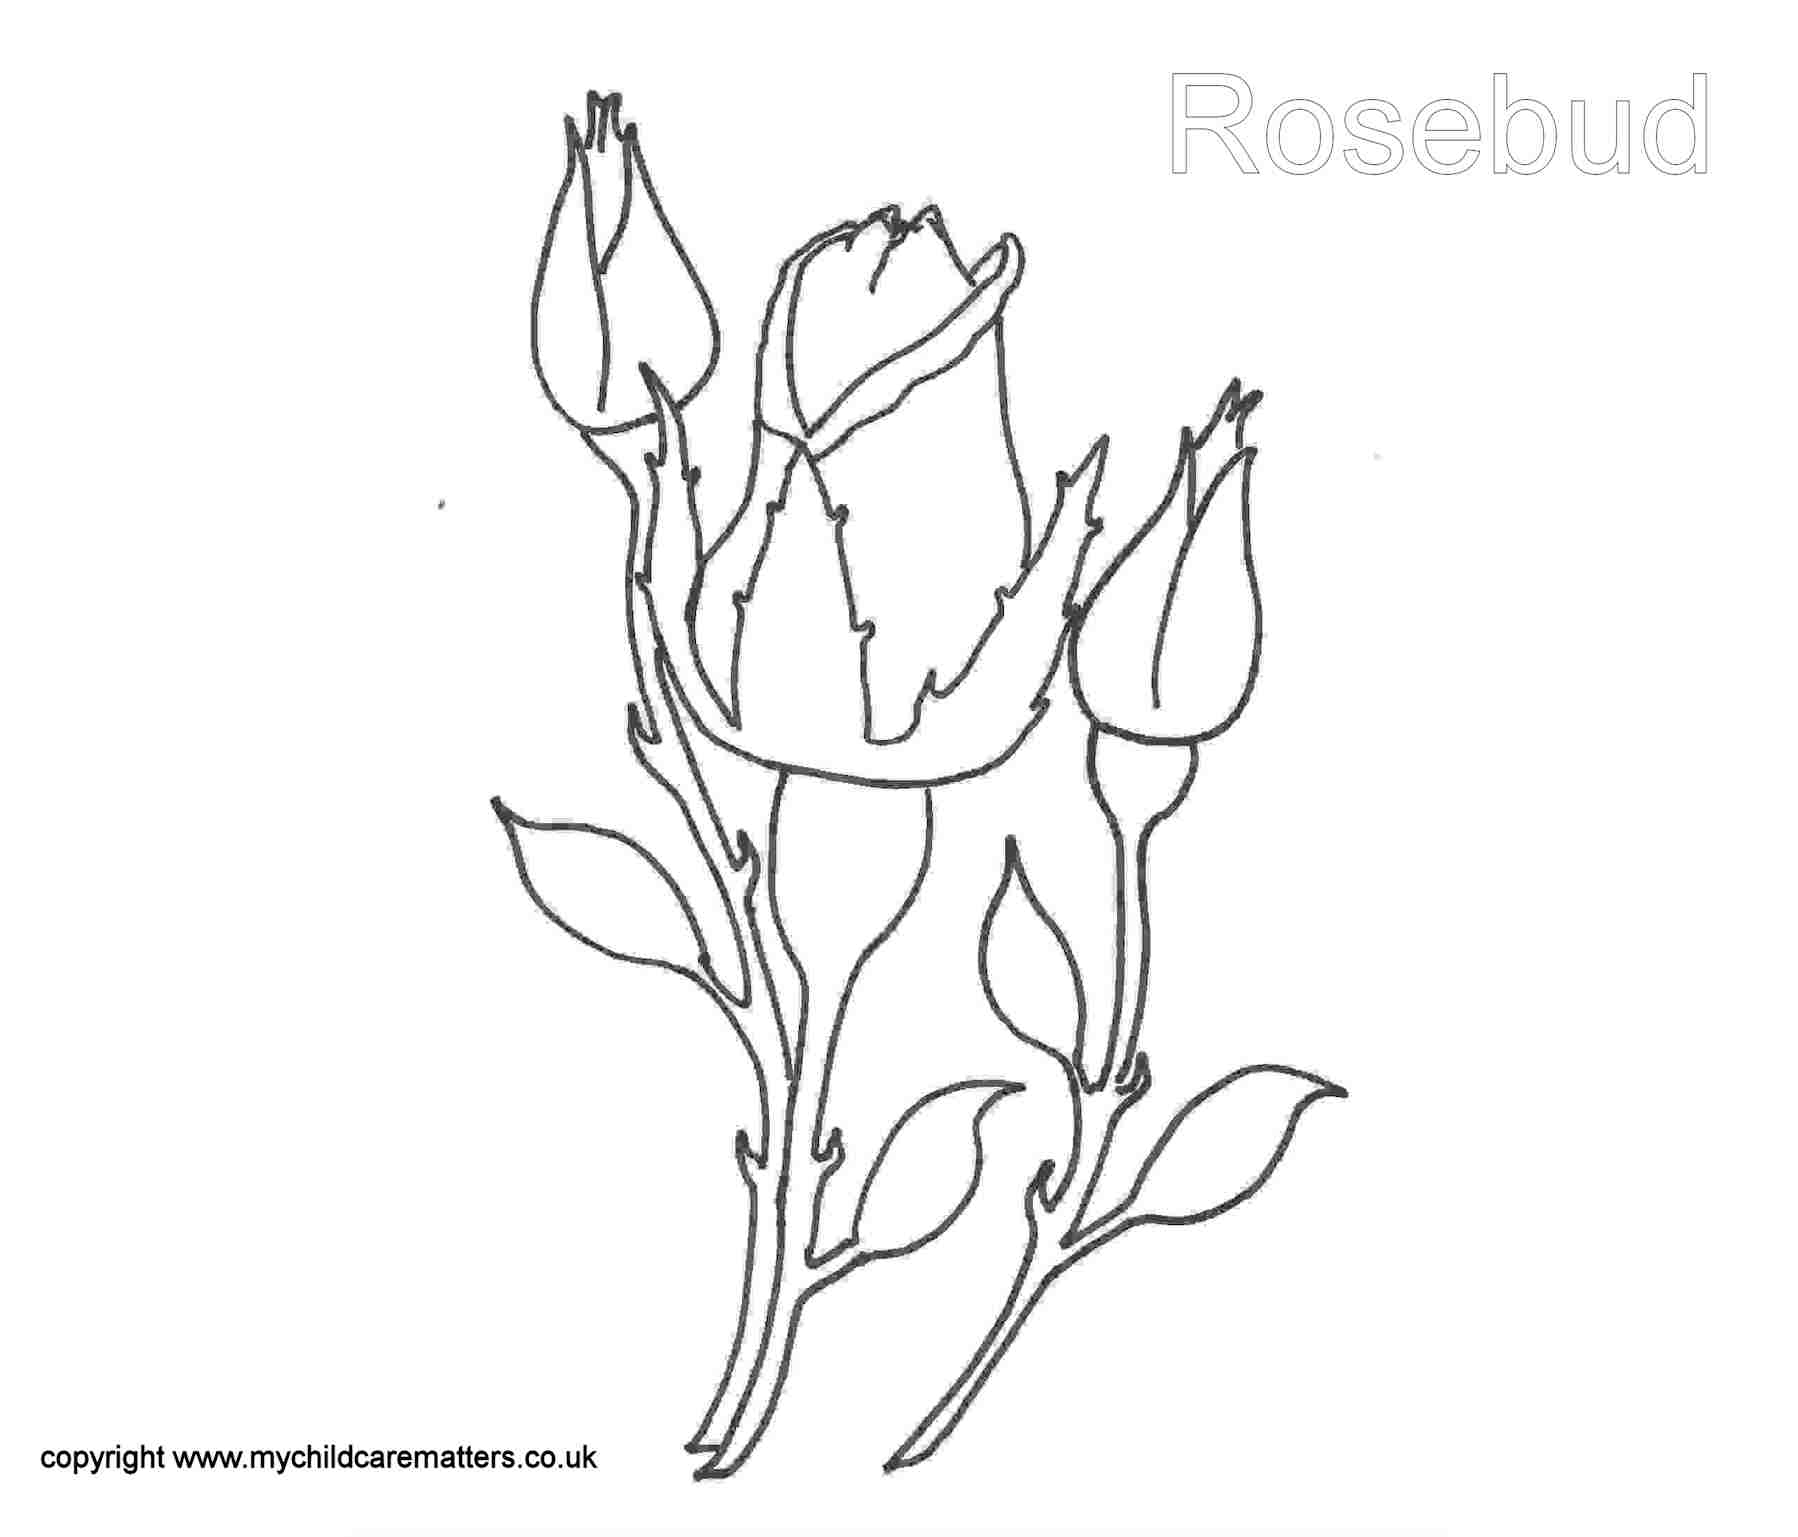 1798x1537 Rose Bud Rock Art Rose Buds, Rock Art And Project